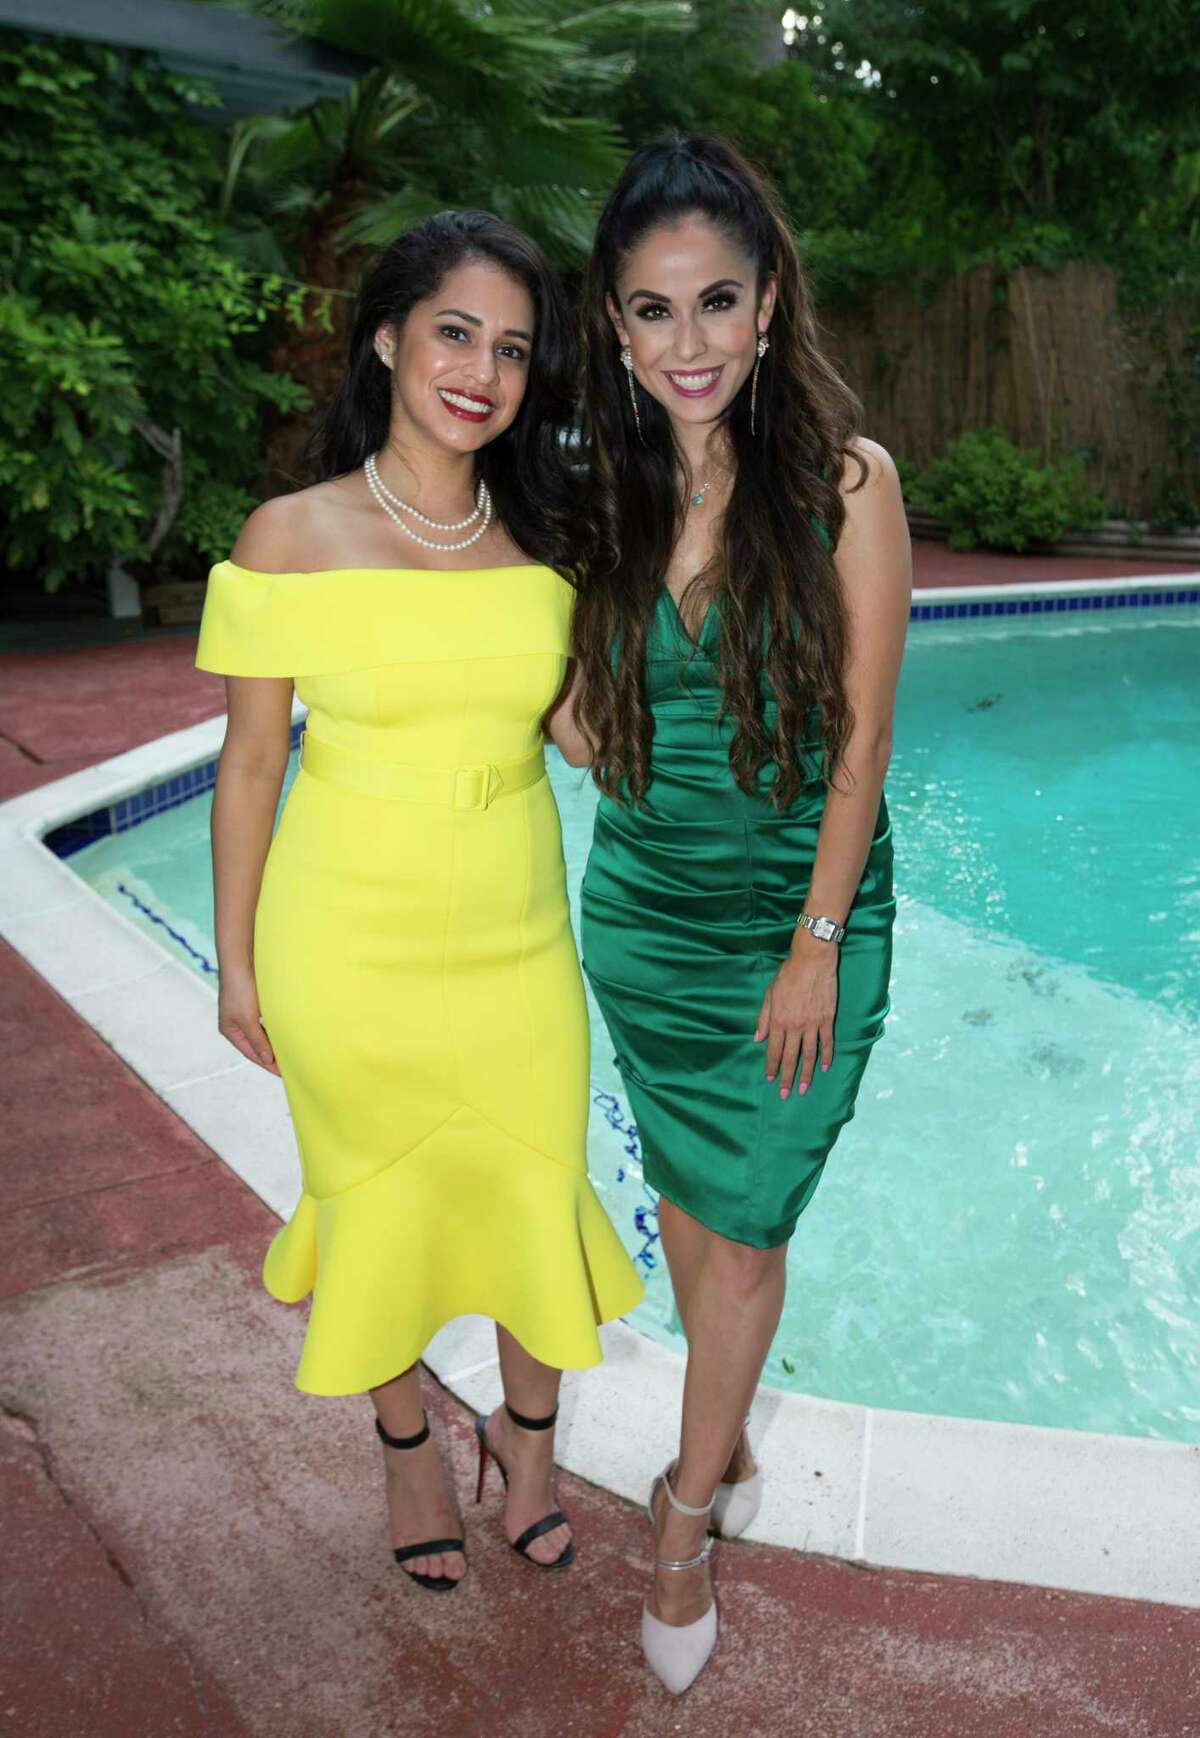 Priscilla de la Rosa, left, and Anya Reyes pose for a photograph at the Bastille Day Houston celebration on Sunday, July 14, 2019, in Houston.